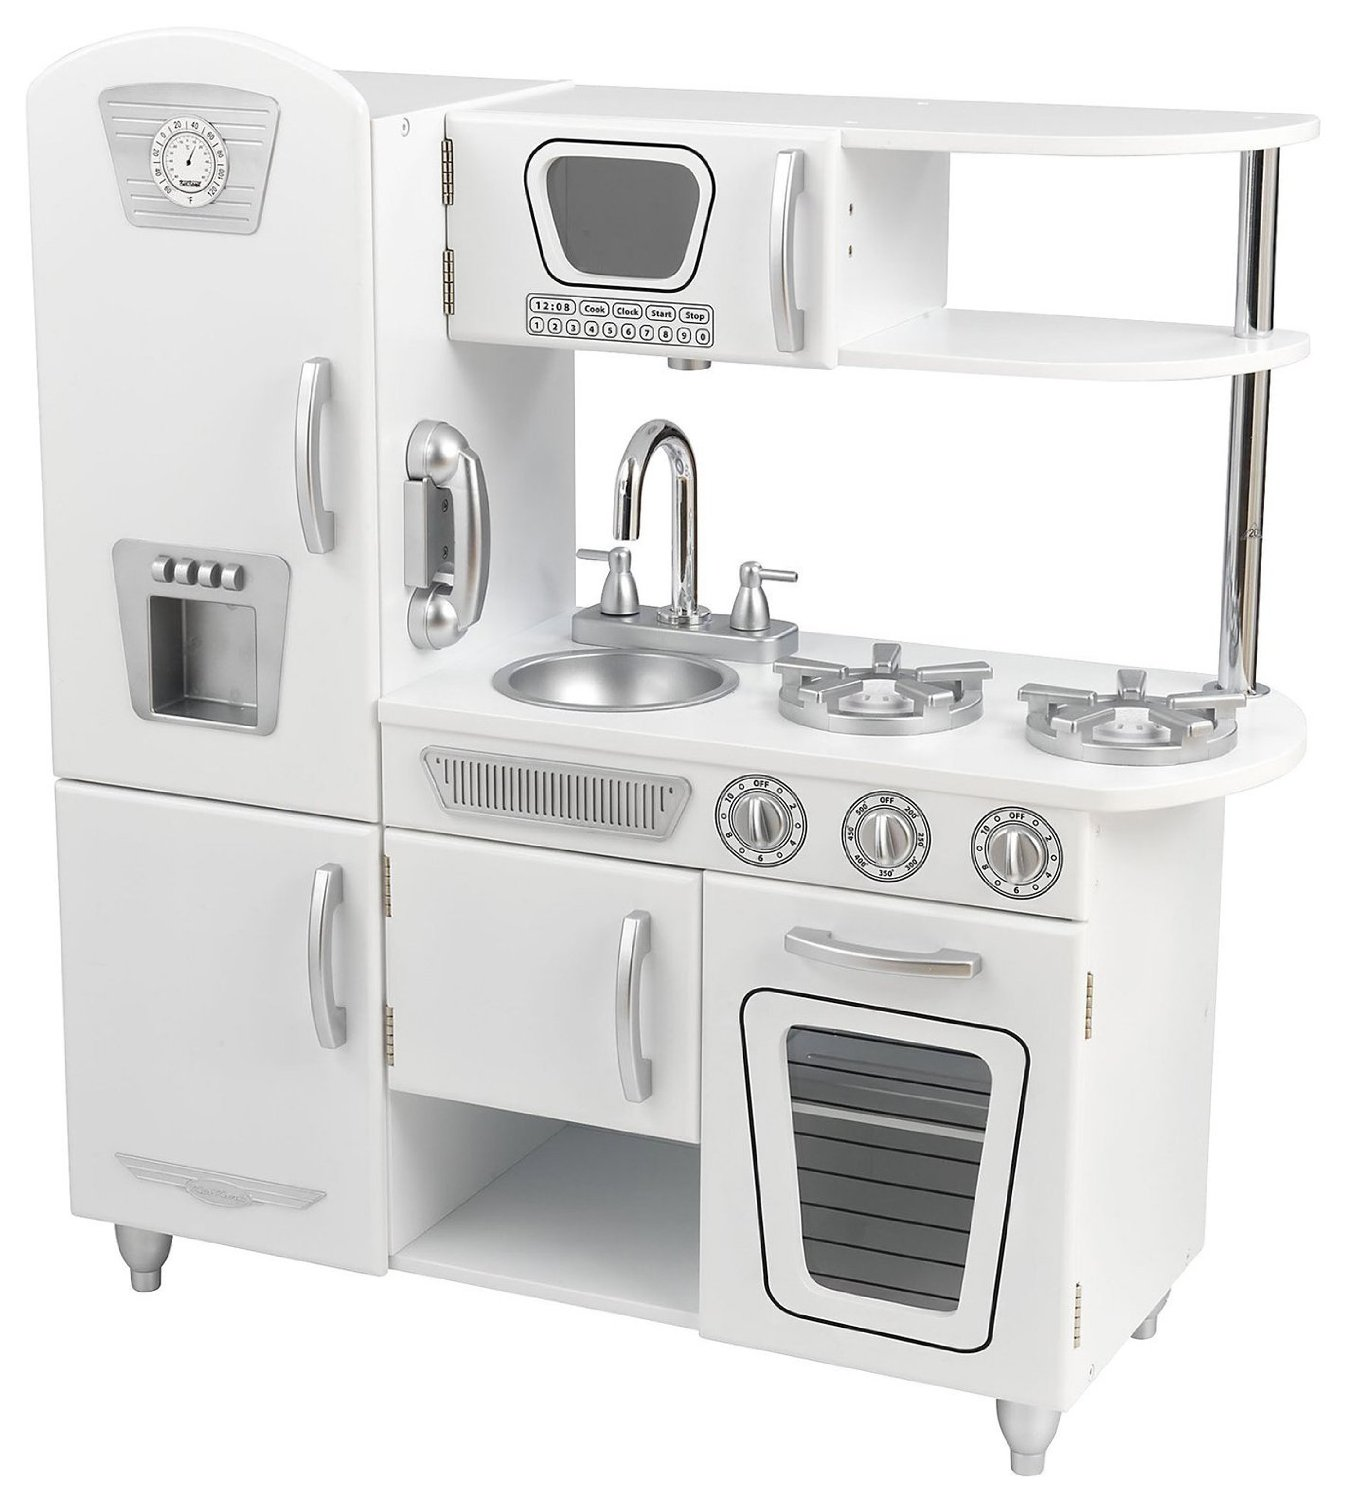 KidKraft Vintage Kitchen Review